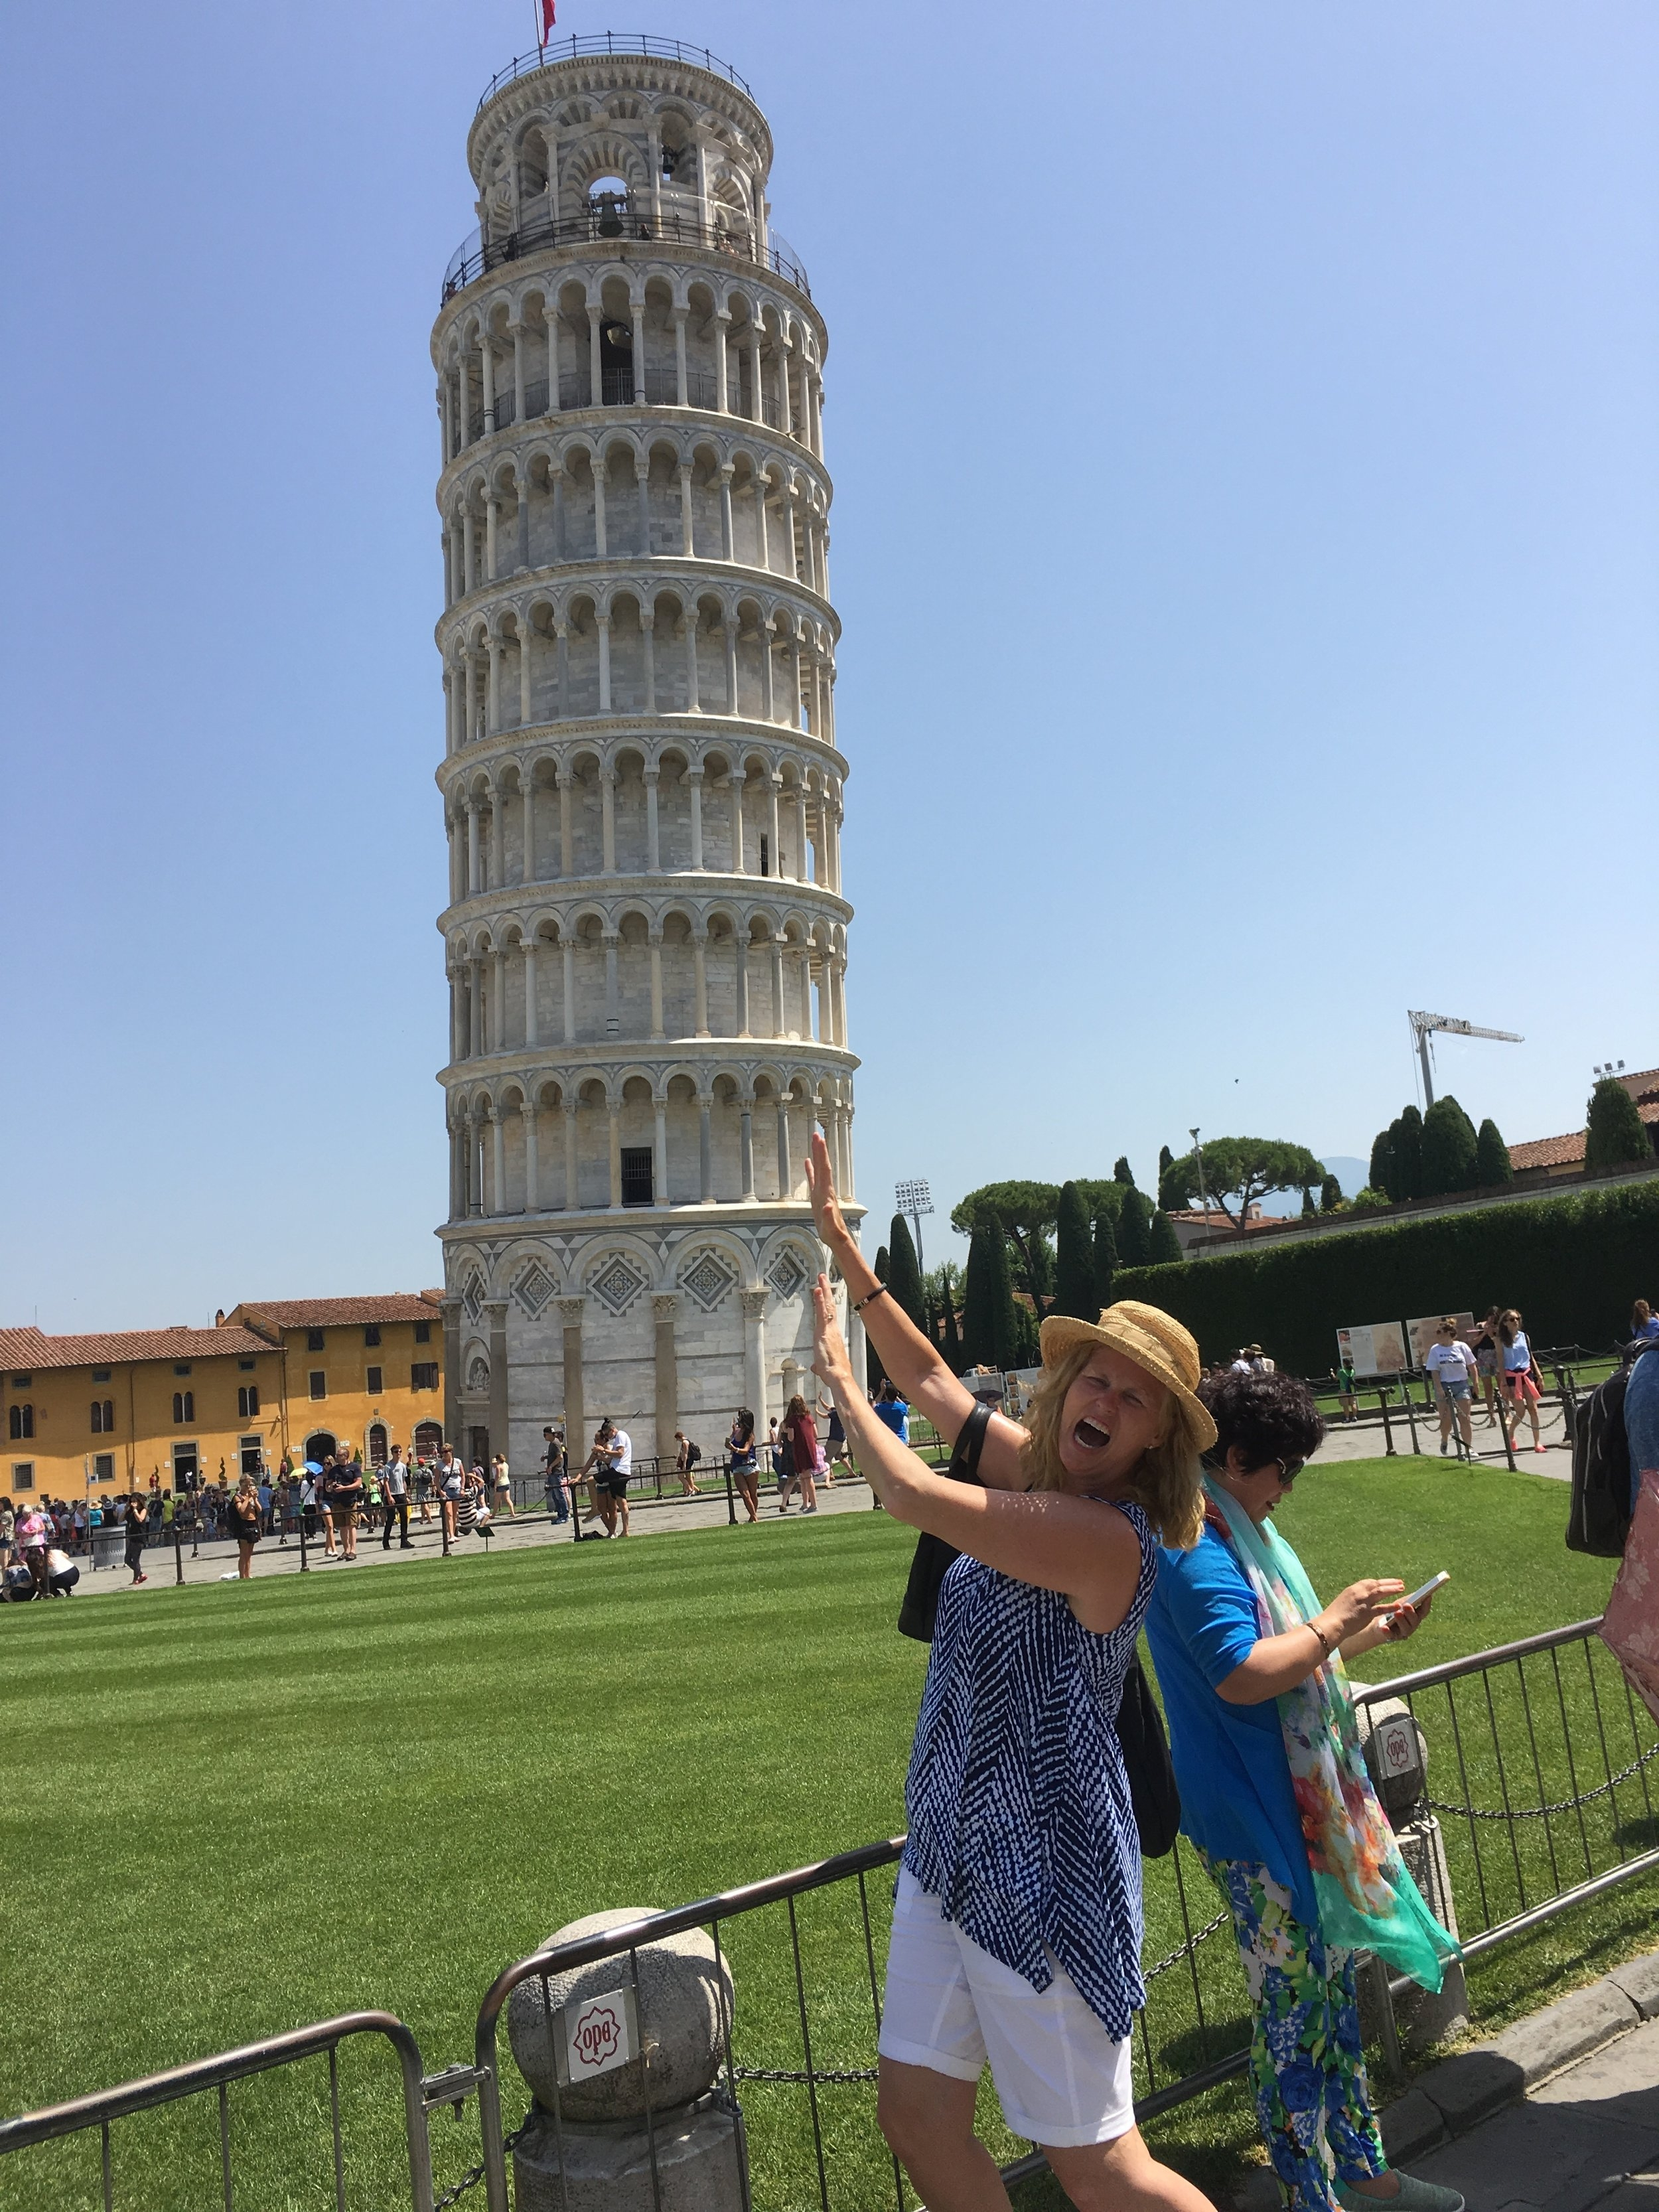 Kathy and the Leaning Tower of Pisa during summer concert tour in Florence and Greve, Italy